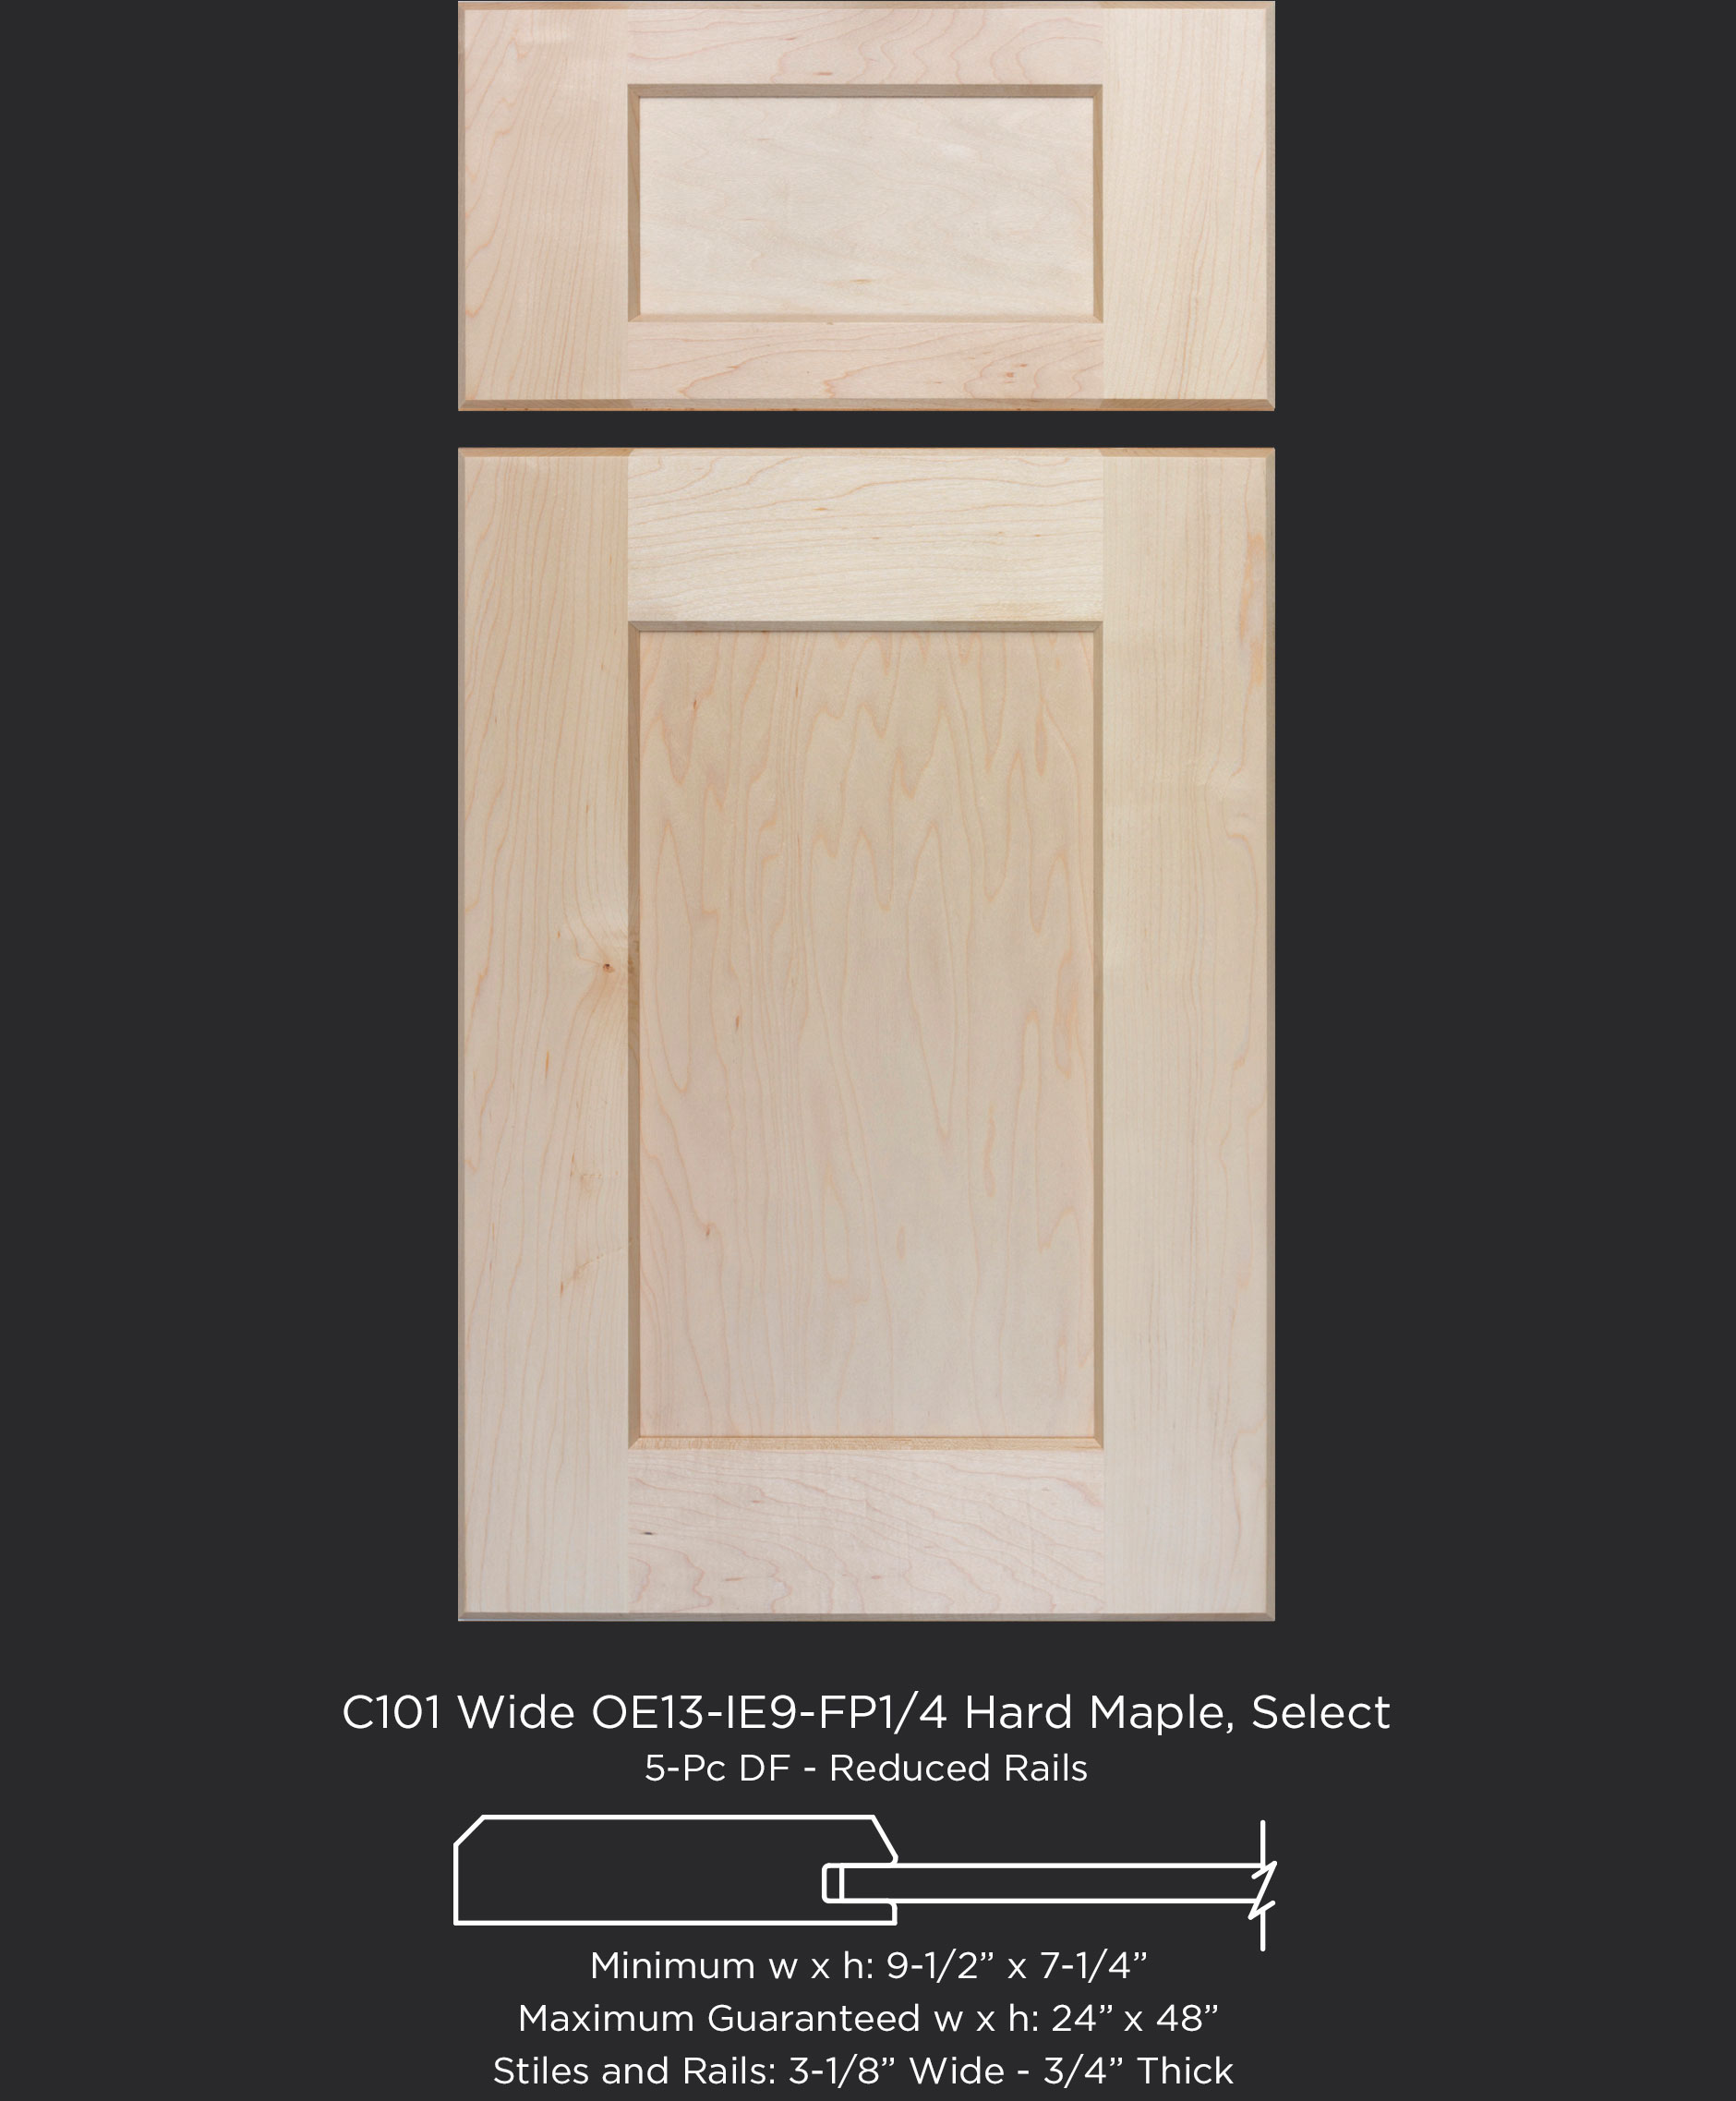 Cope and Stick Cabinet Door C101 OE13-IE9-FP1/4 Hard Maple Select